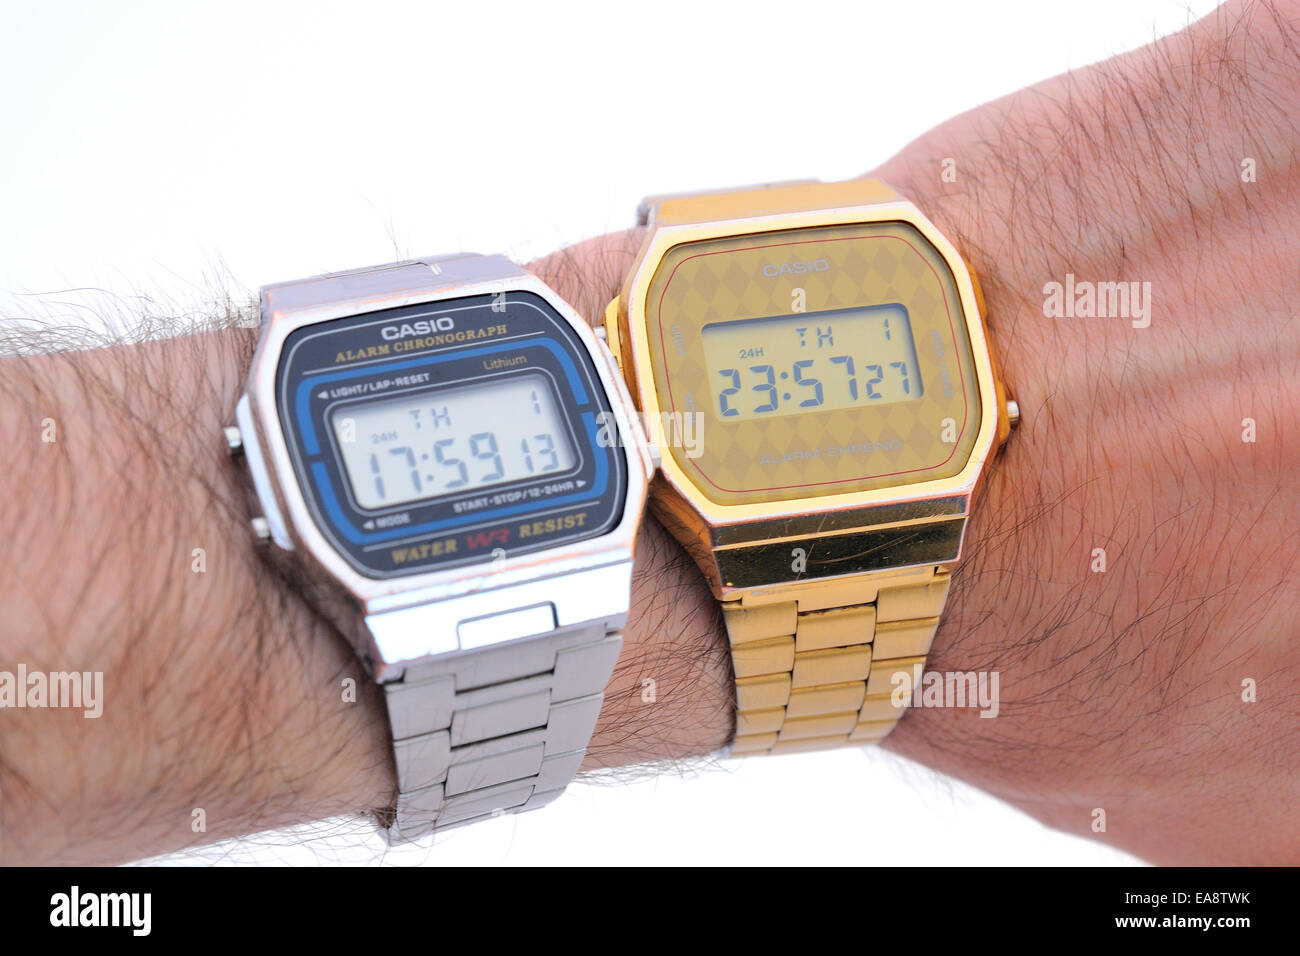 BARCELONA - JULY 12: A human wrist with a with two Casio watches, one in gold color and the other one in silver. - Stock Image